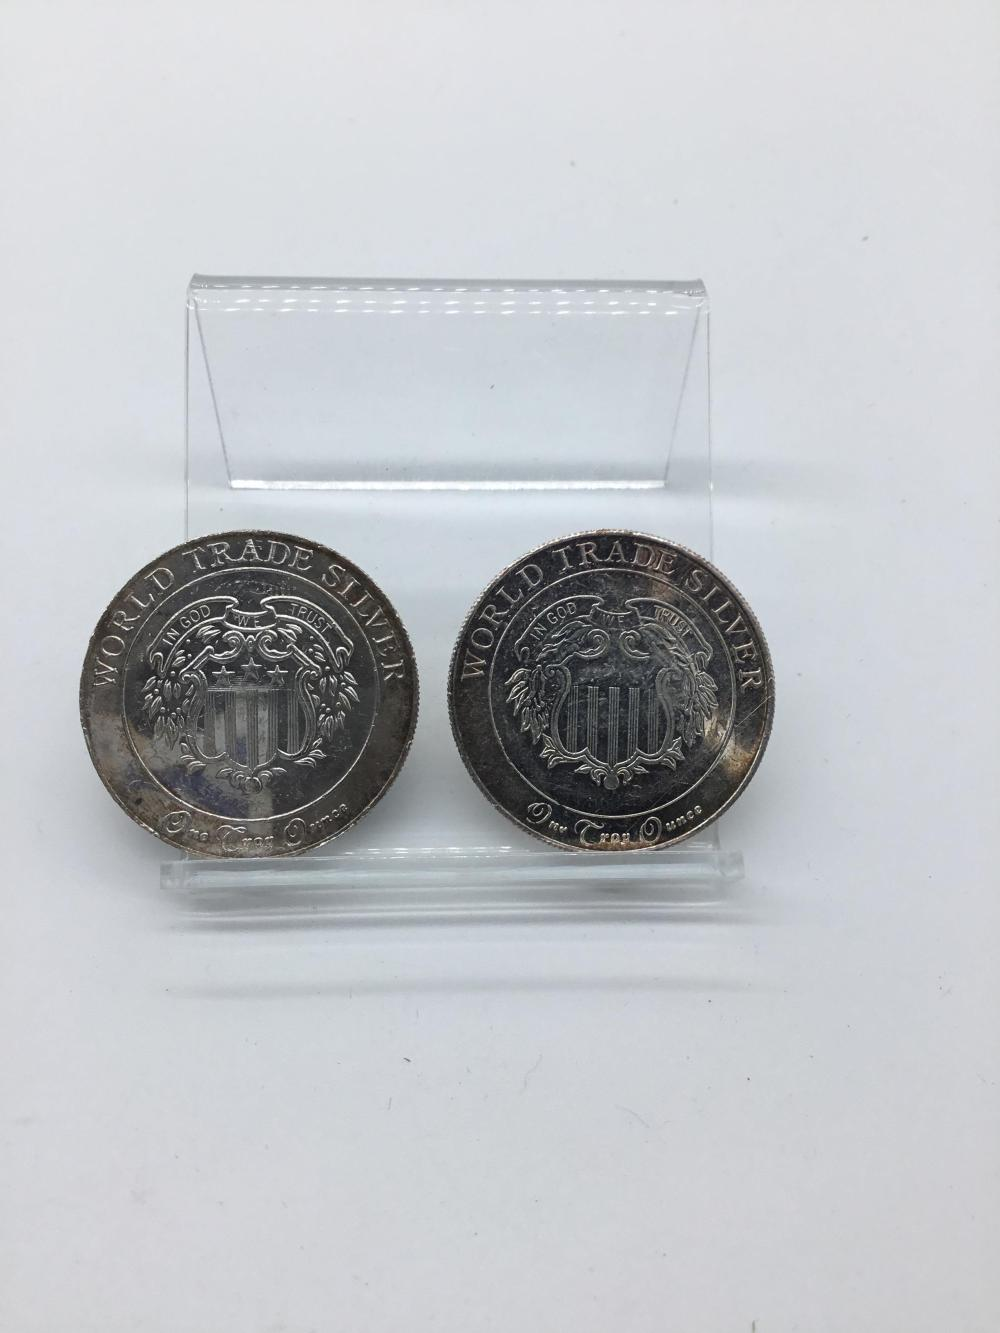 World trade silver rounds